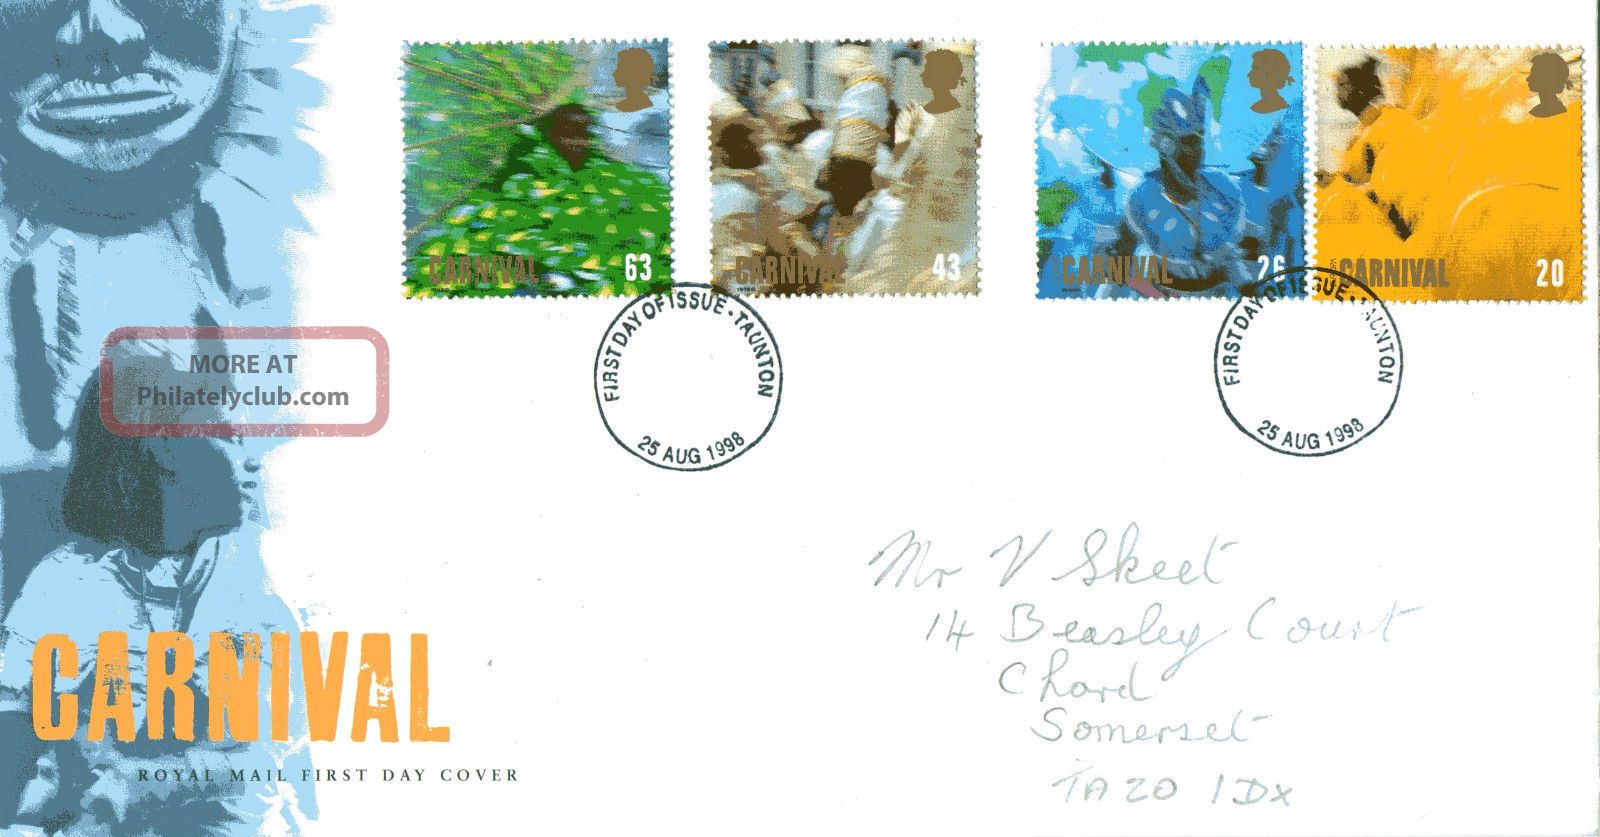 25 August 1998 Carnival Royal Mail First Day Cover Taunton Fdi (a) Topical Stamps photo